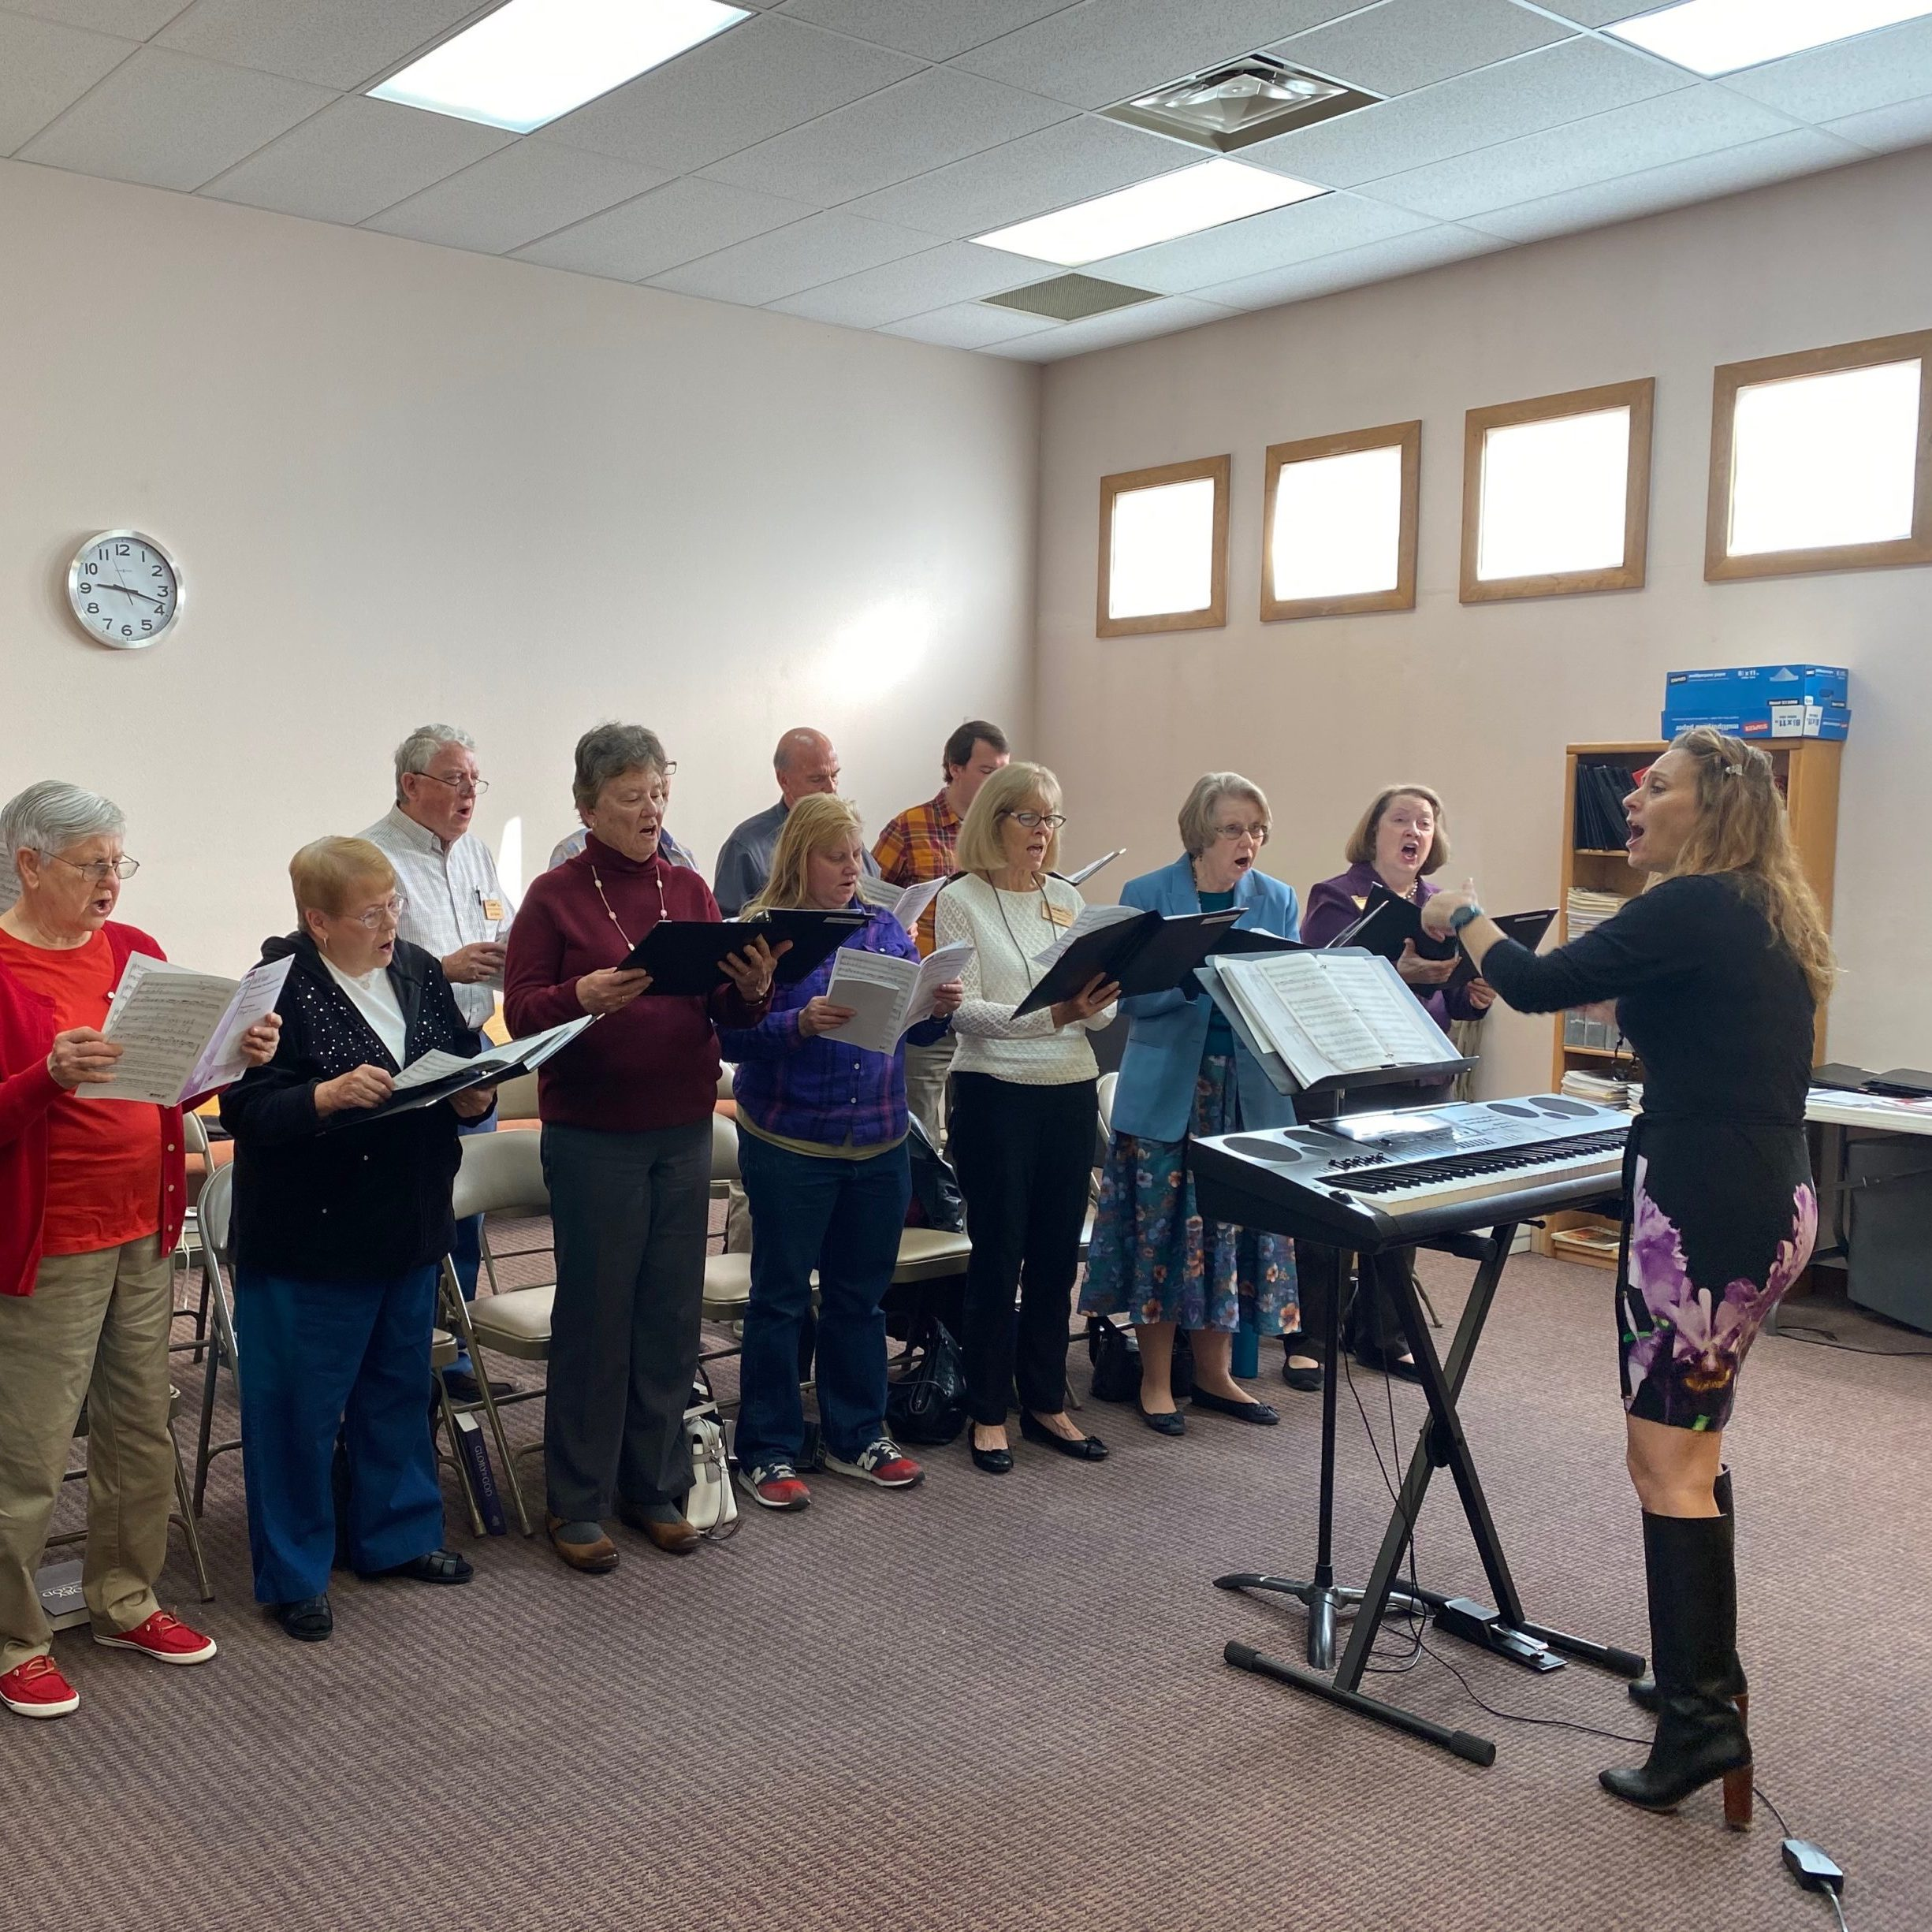 Choir rehearsing before worship with music director Deborah Mhoon